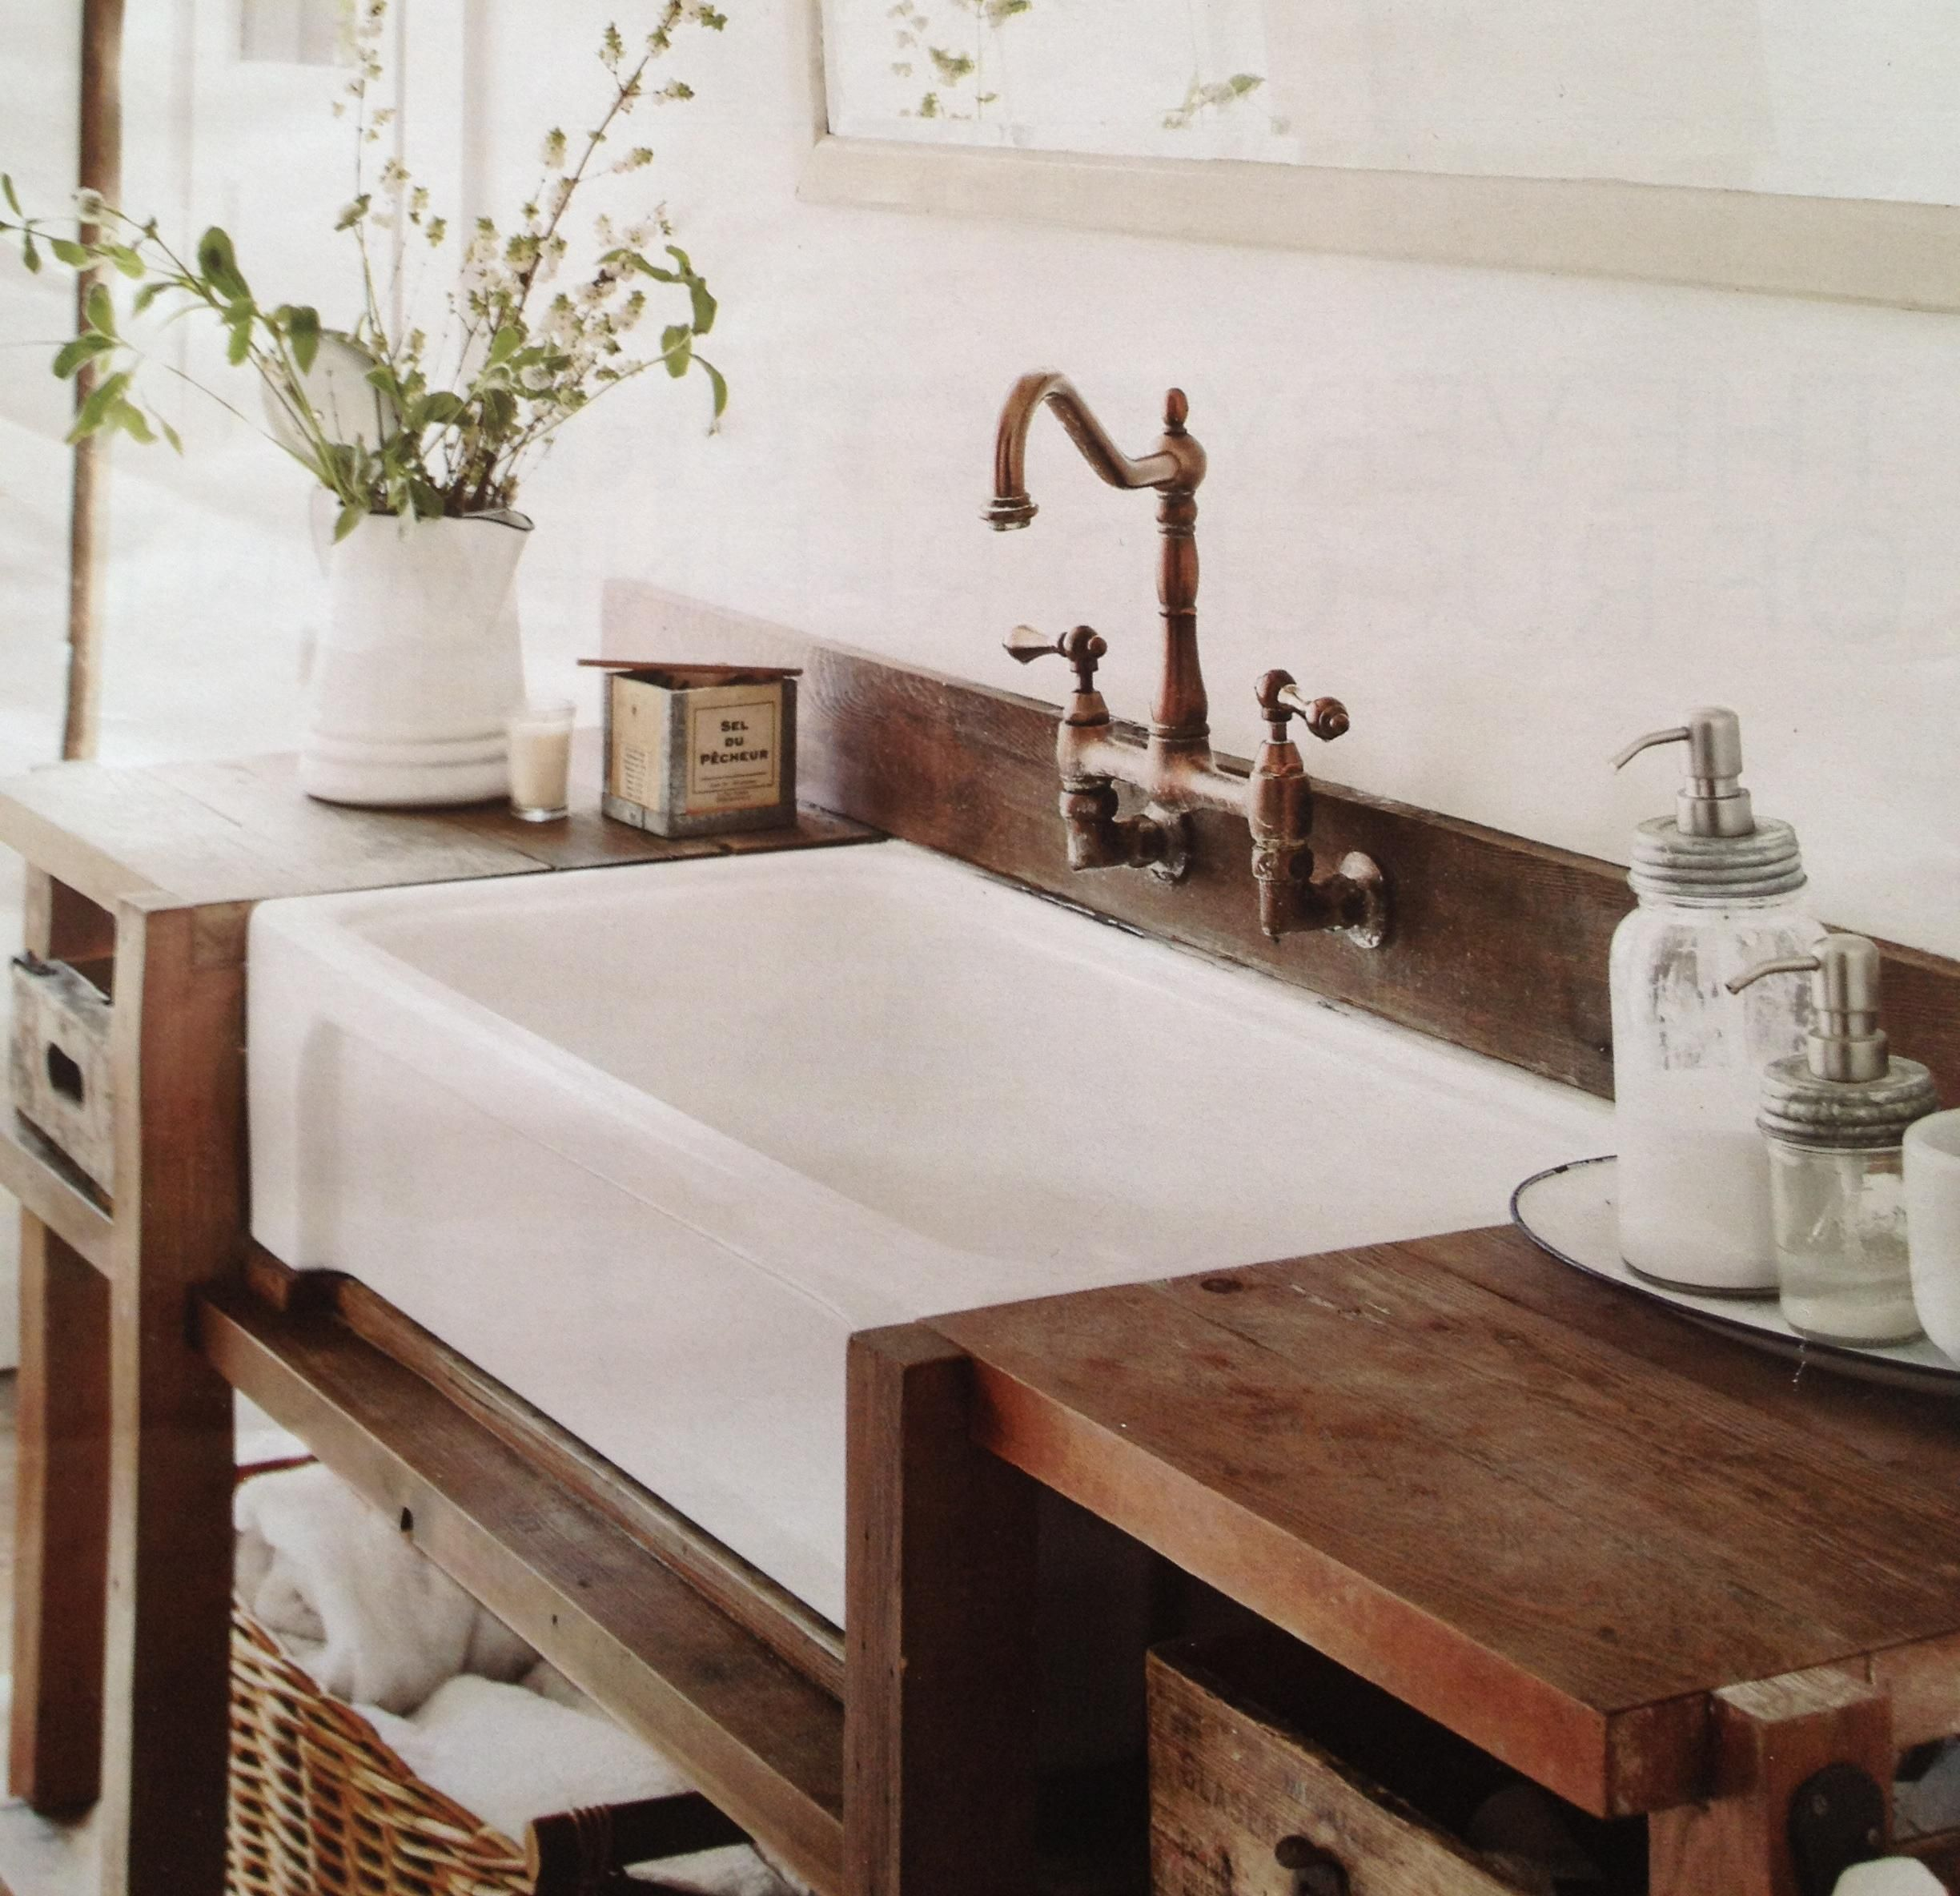 country style kitchen sink buy cabinets online farmhouse bathrooms friday laundry tubs